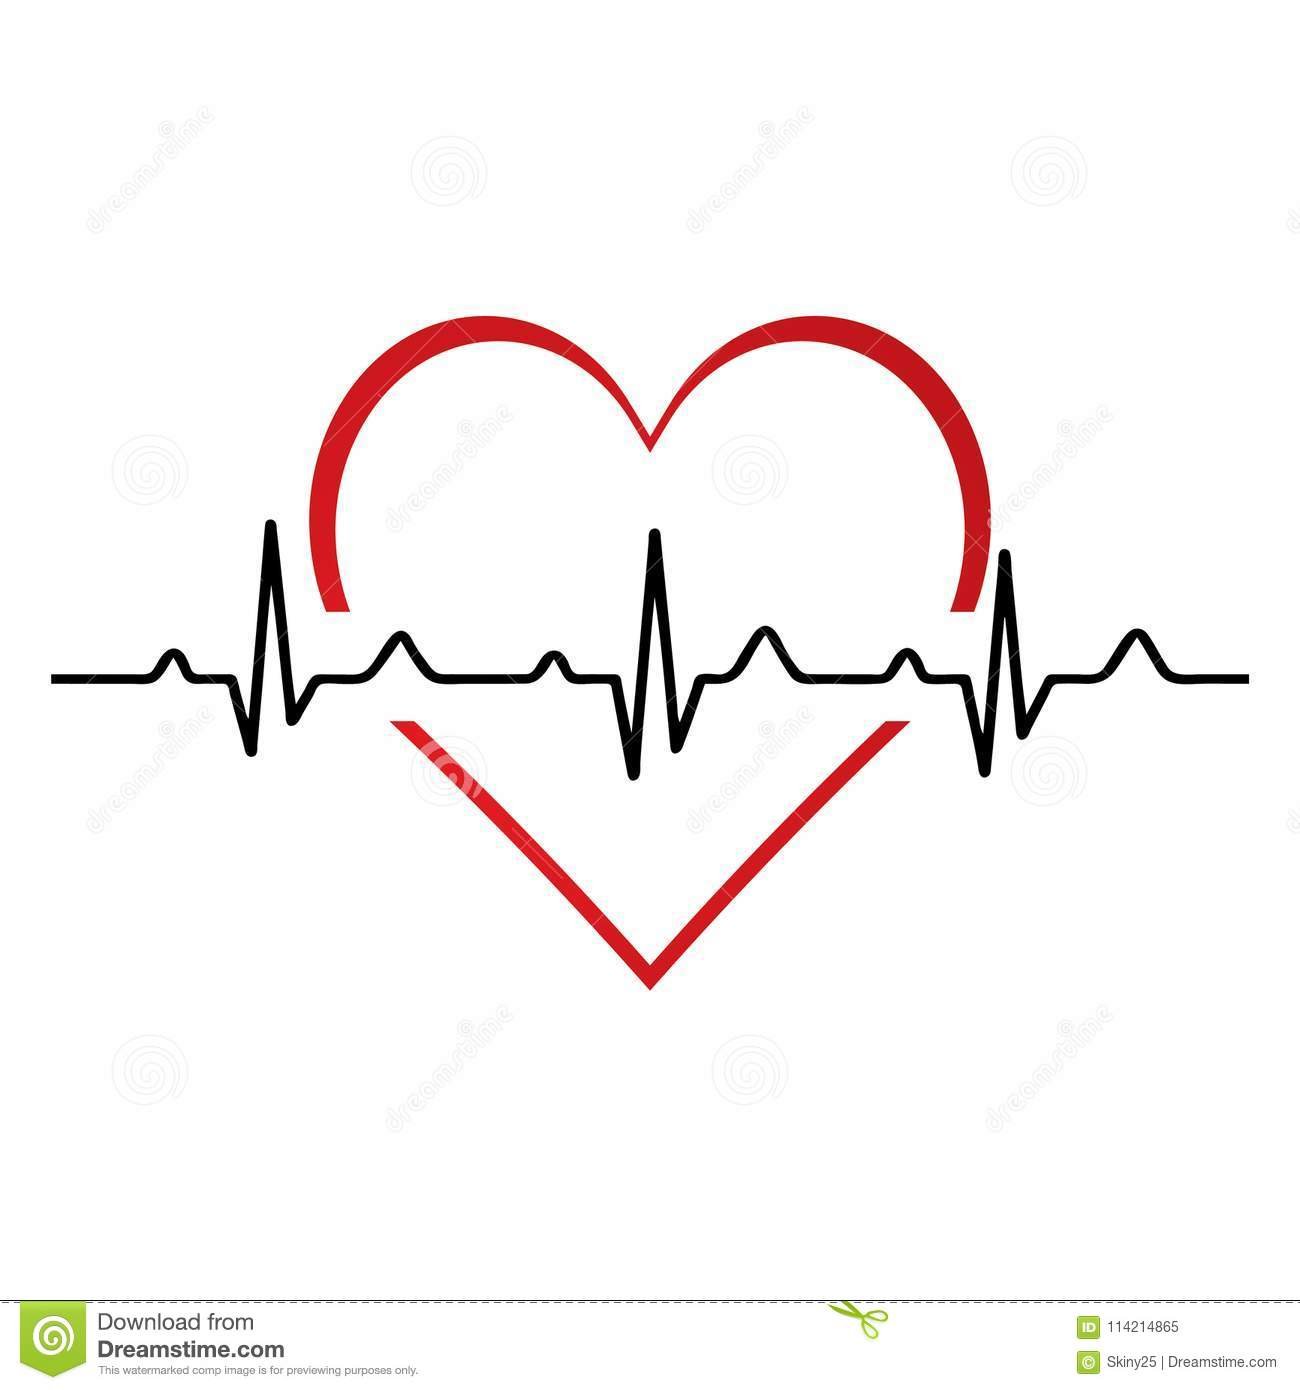 Heartbeat Heart Beat Pulse Flat Icon For Medical Stock